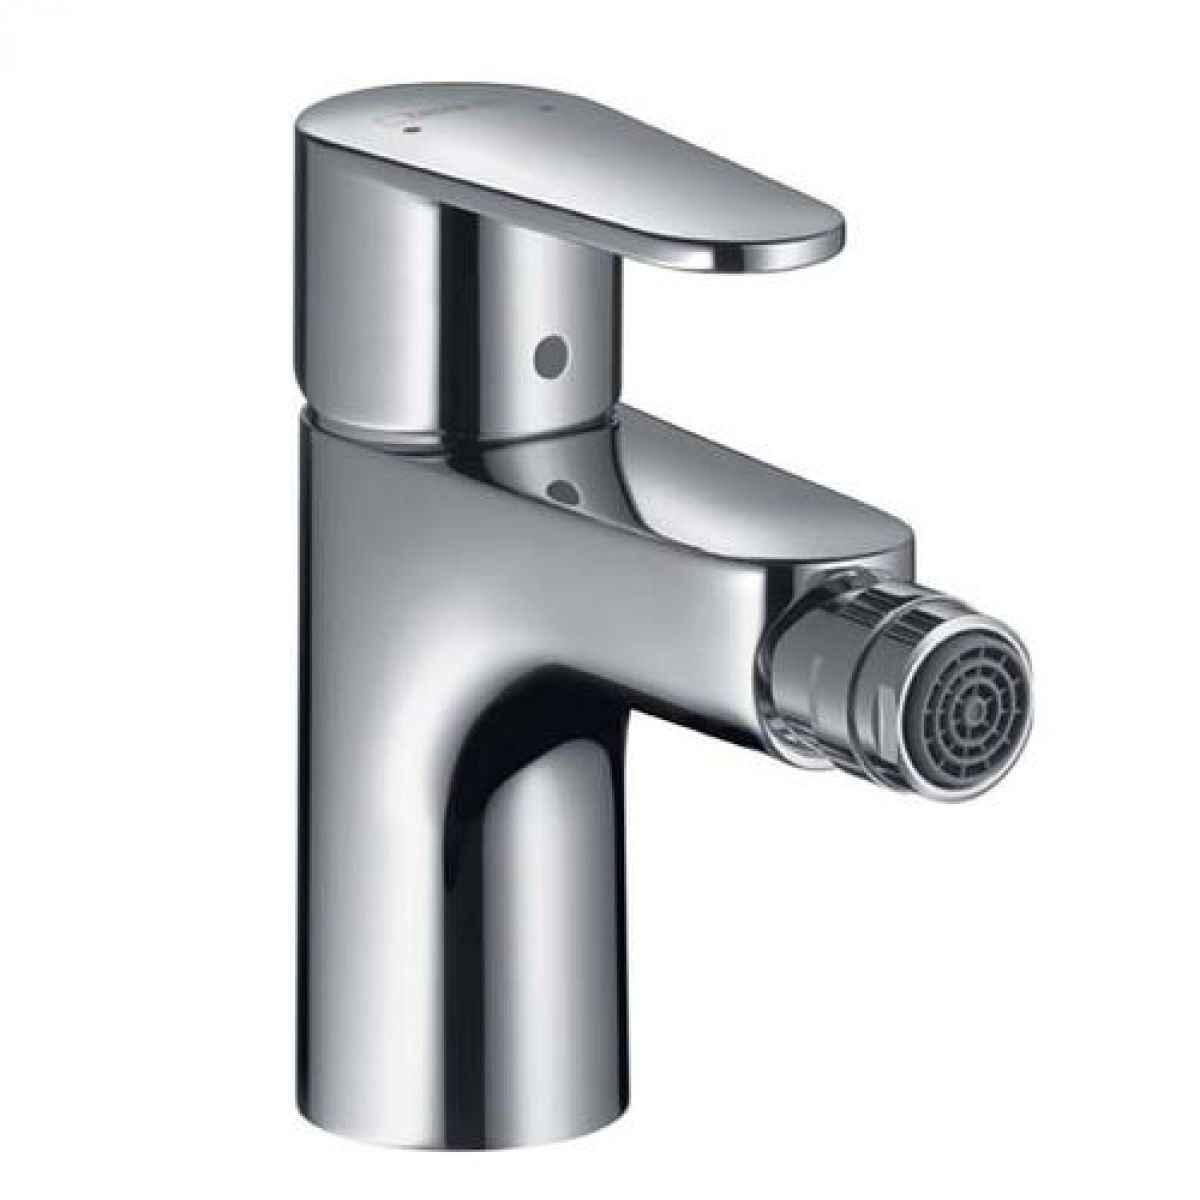 hansgrohe talis e2 bidet mixer tap uk bathrooms. Black Bedroom Furniture Sets. Home Design Ideas